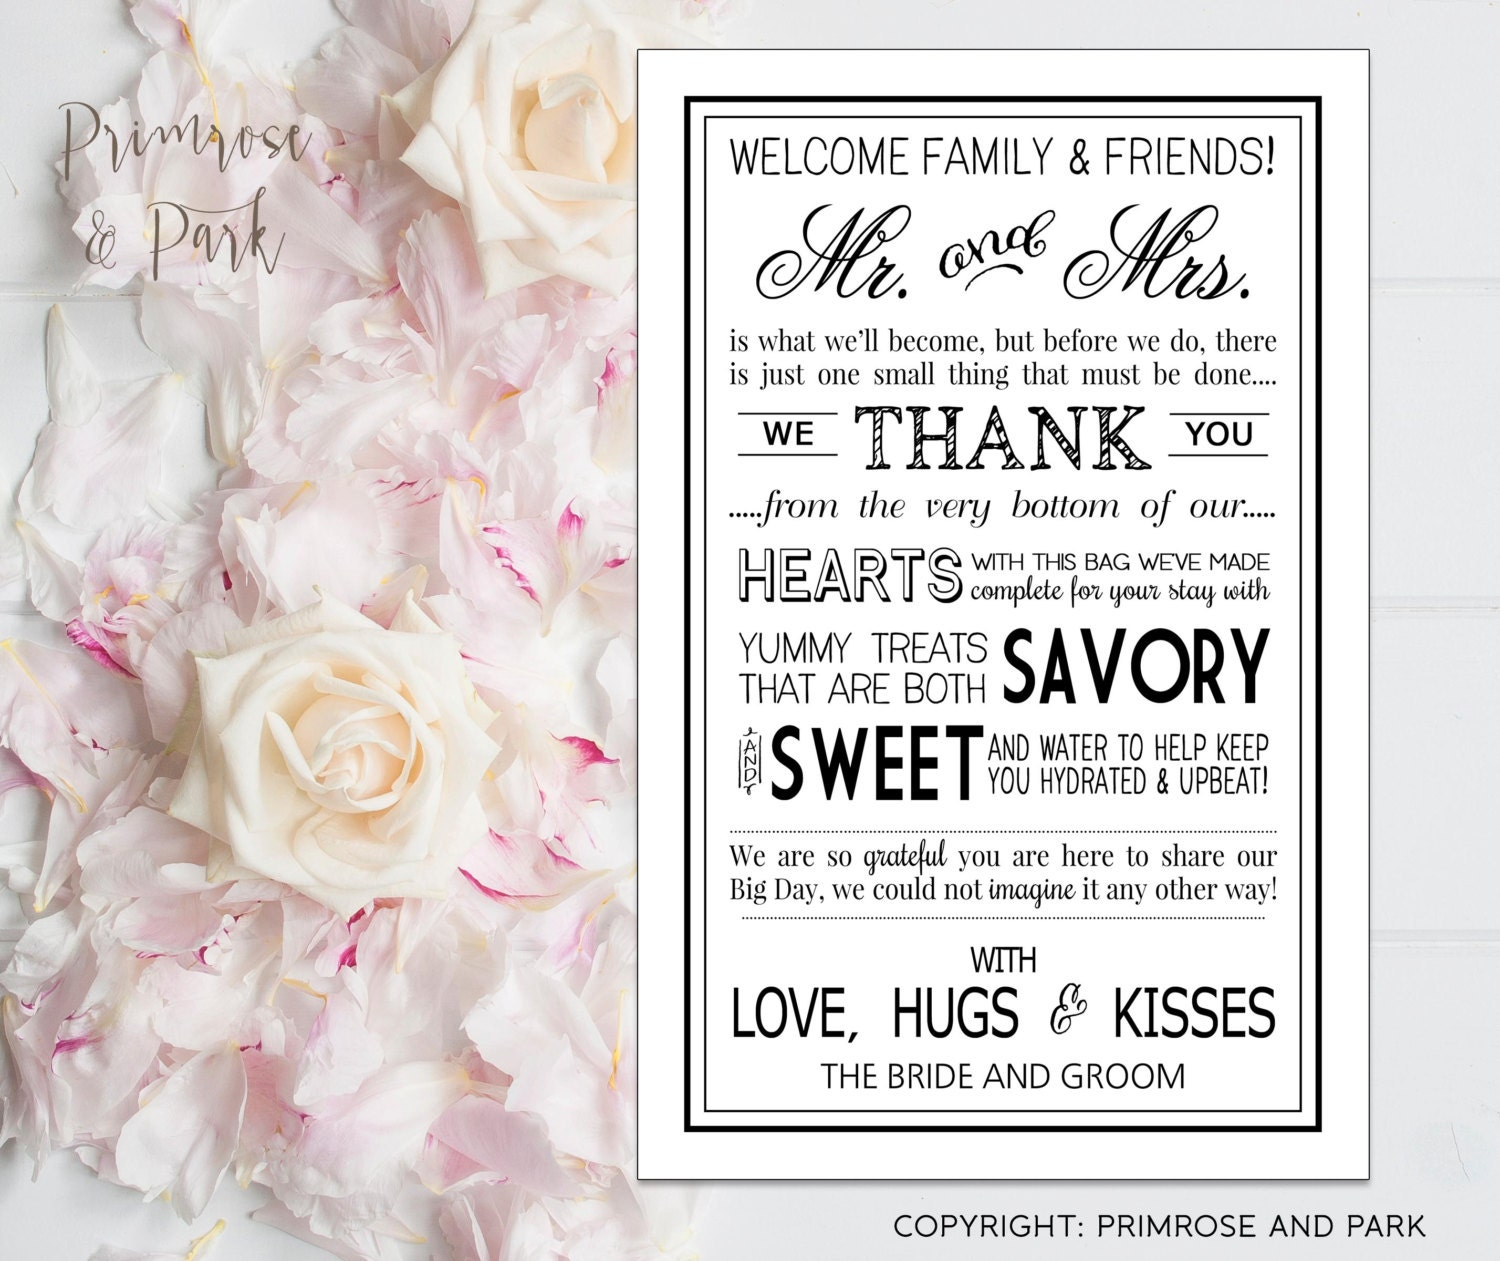 Wedding Gift Bags Etsy : Wedding Welcome Letter Printable PDF in Black // Wedding